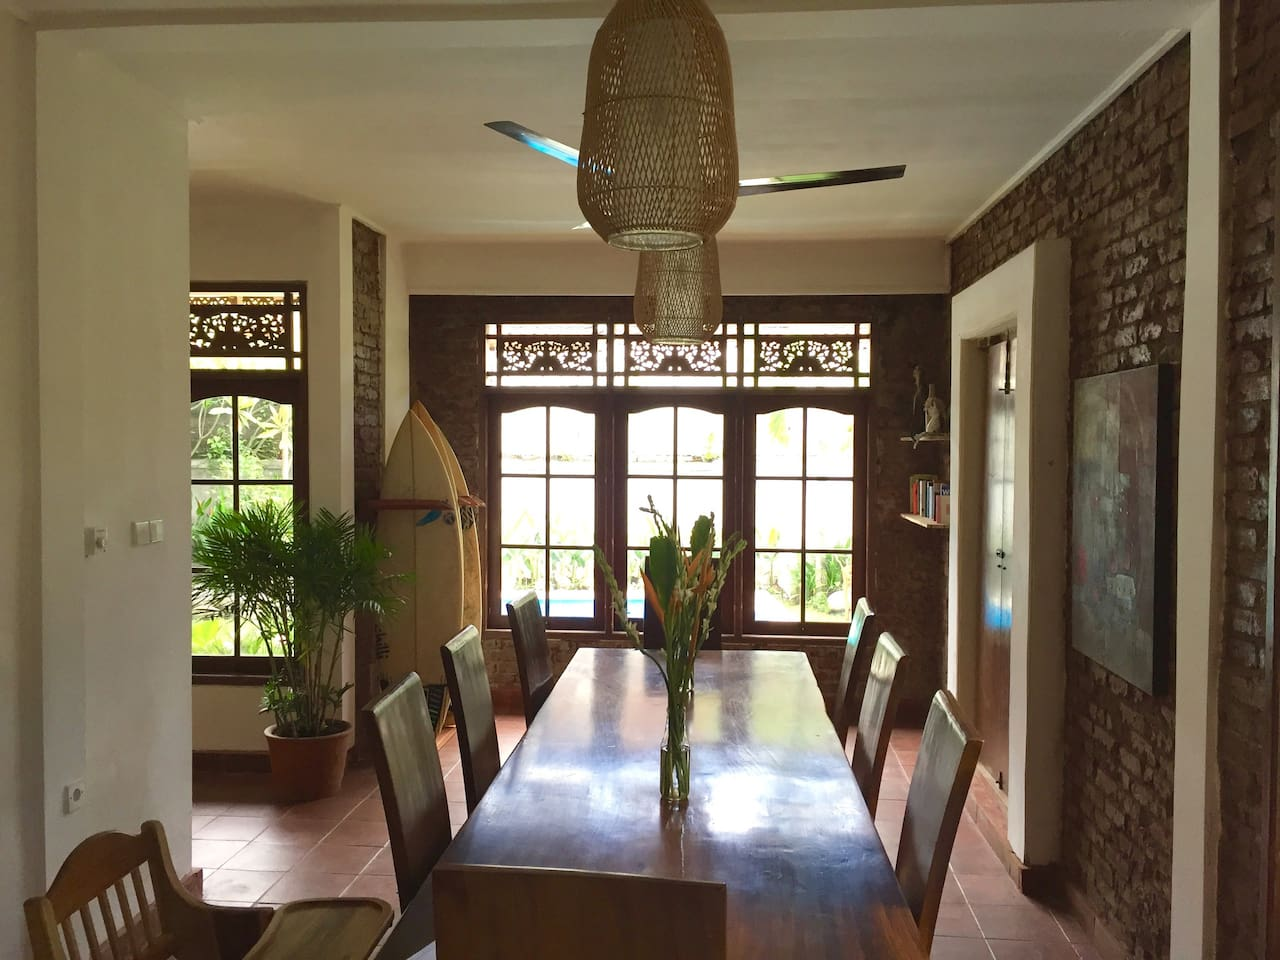 Dining room overlooking the garden on the 1st floor: big teak wood table with 8 chairs, overhead fan and surf rack in the back